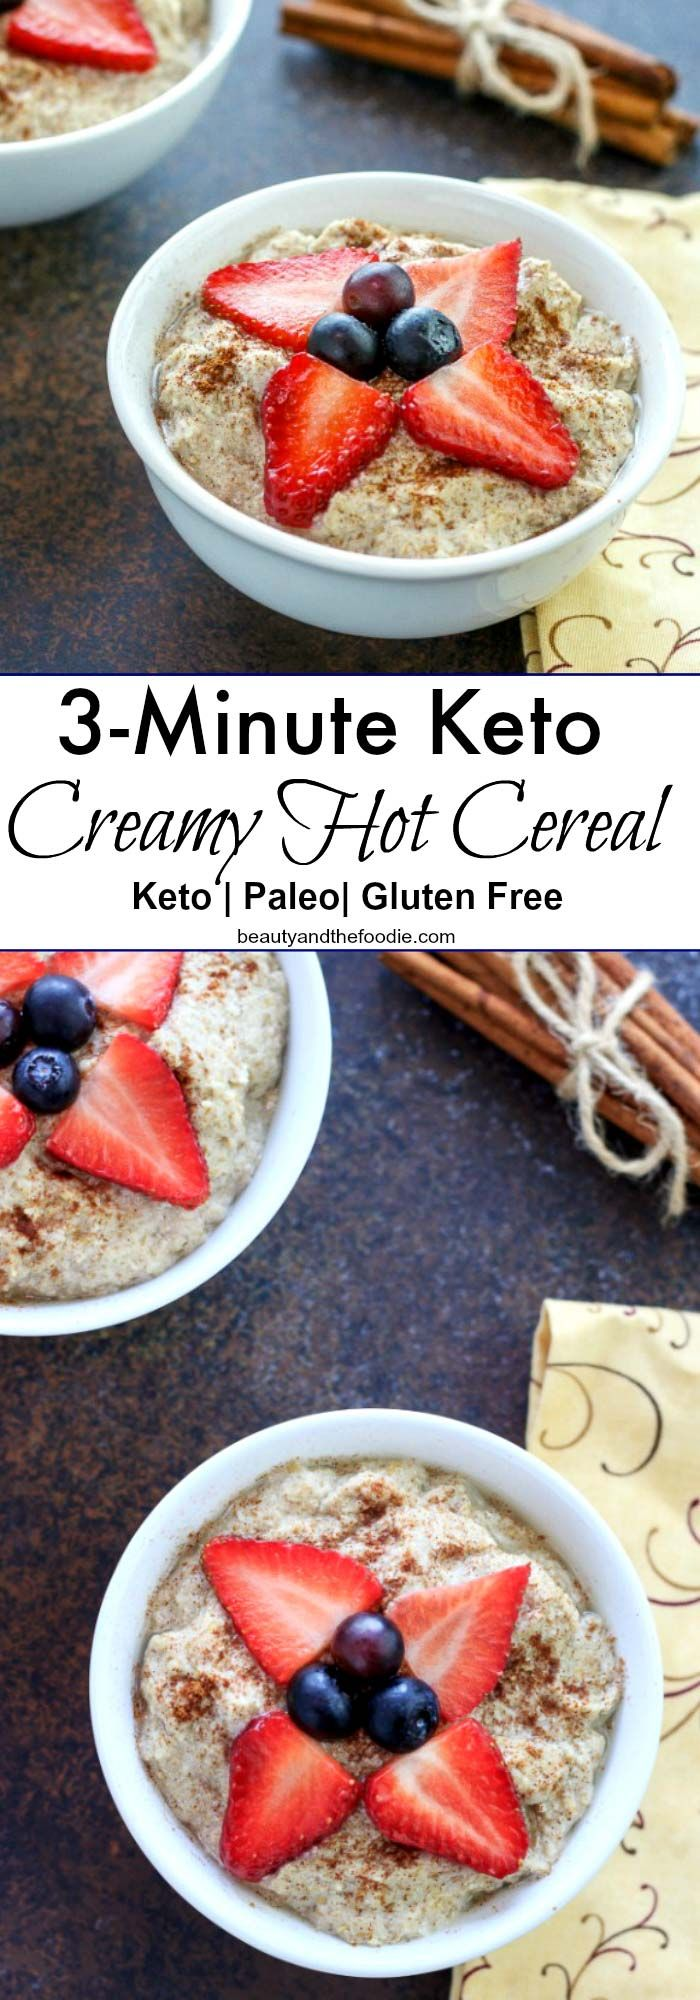 3-Minute Keto Creamy Hot Cereal- Paleo and Low Carb.